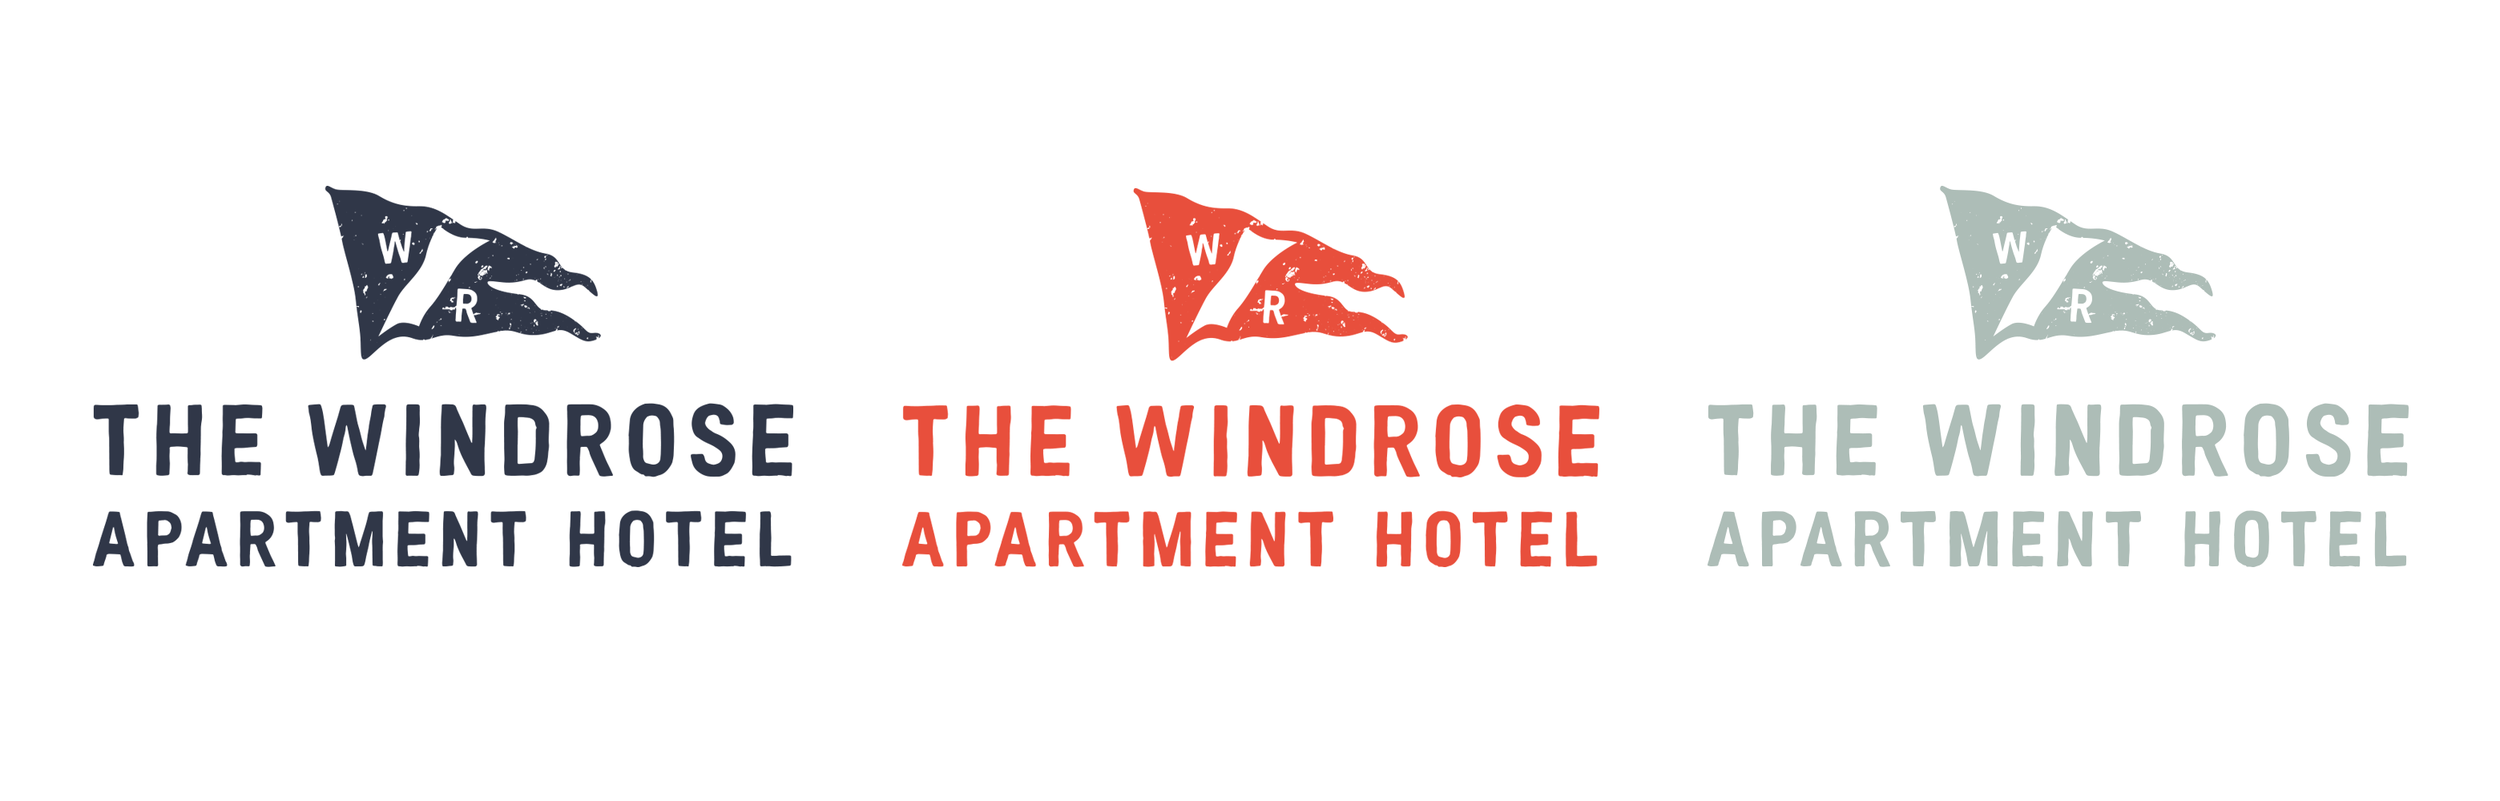 FlourishCollaborative_WindroseHotel_LogoColorOptions.png